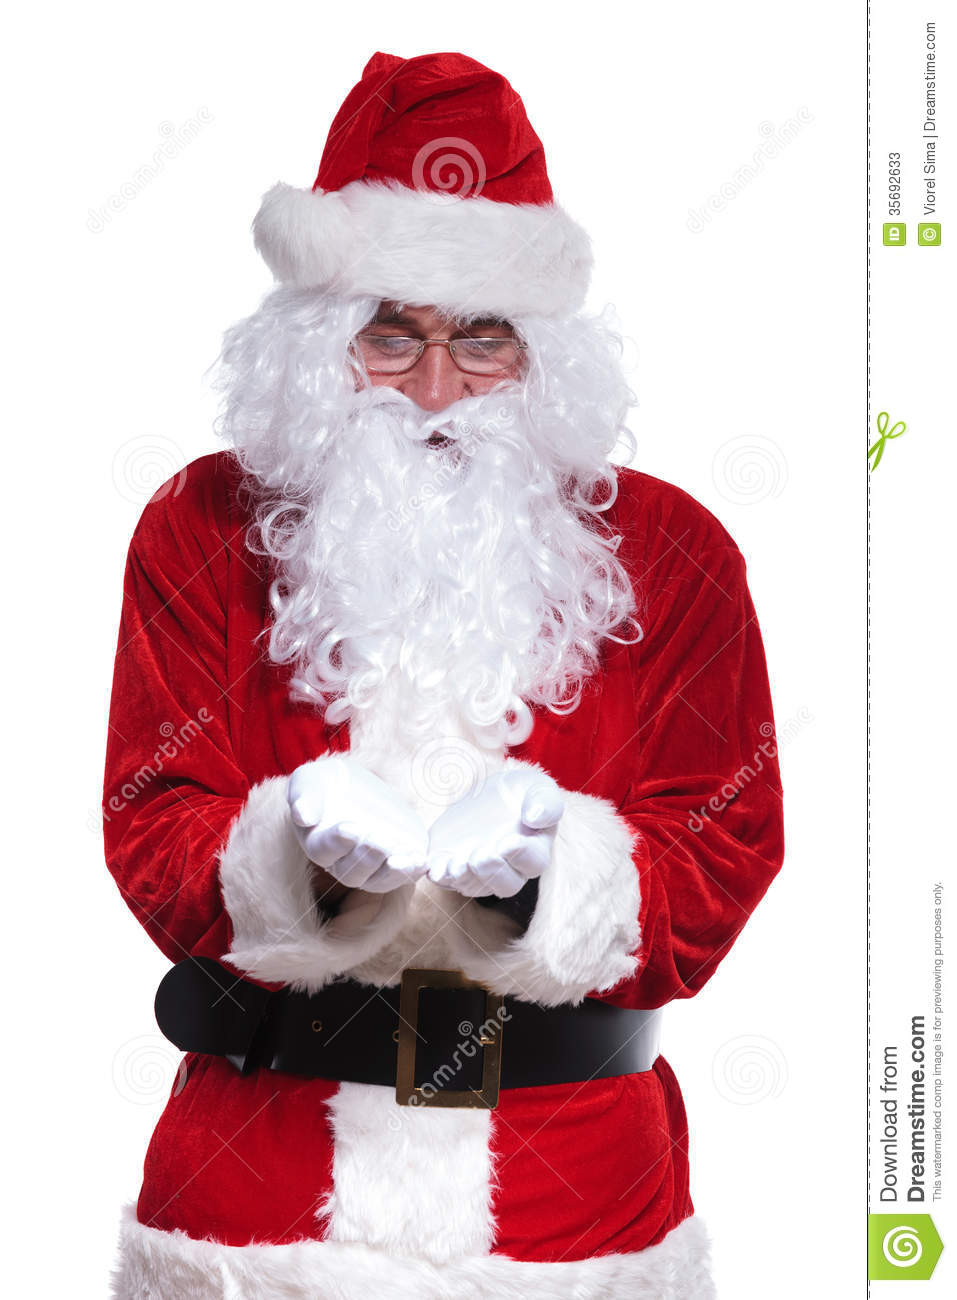 Santa claus is holding something on his hands